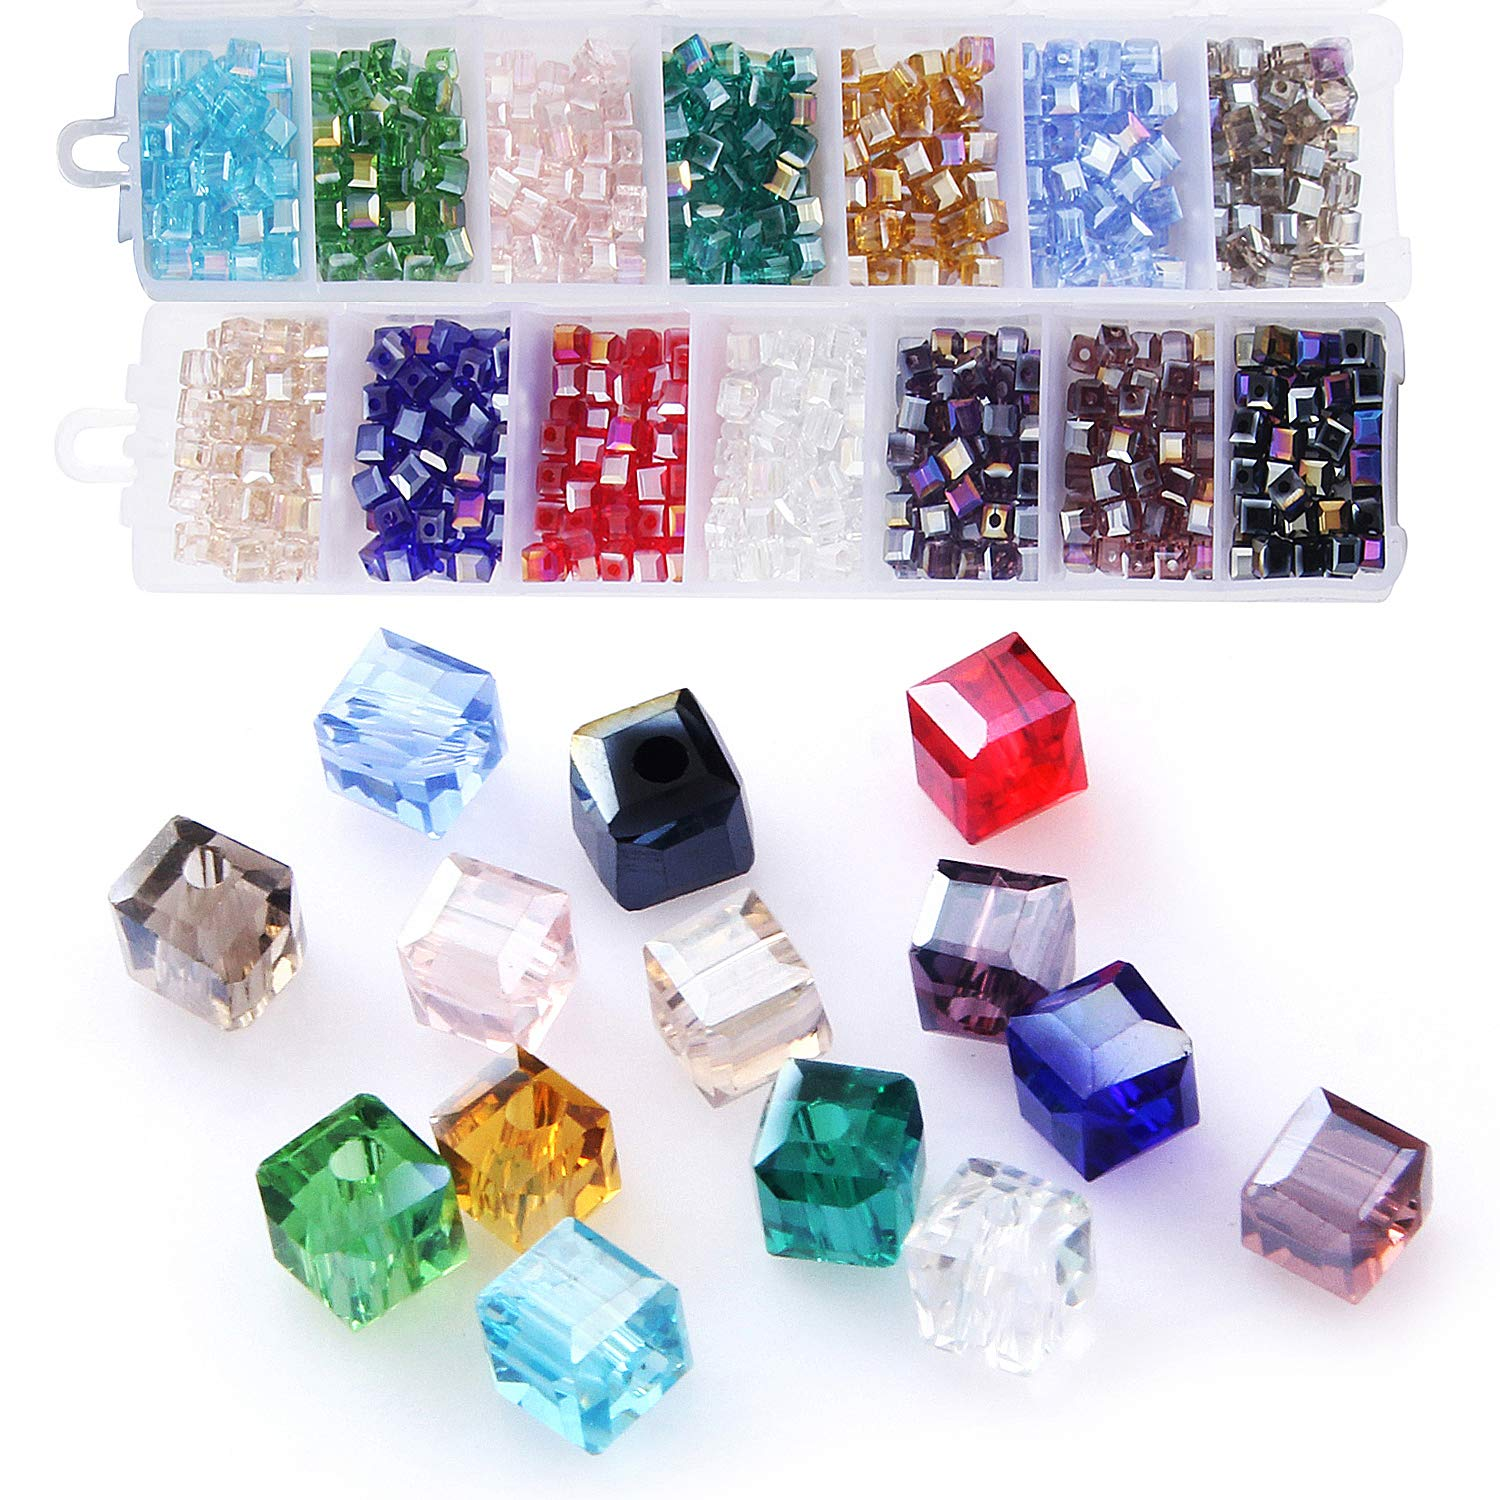 Cube Crystal Glass Beads, Wholesale Crystals Beading (Similar Cut #5601)  Faceted Square Shape 4mm Lot 700pcs 14 Colors with Free Container Box,ZHUBI